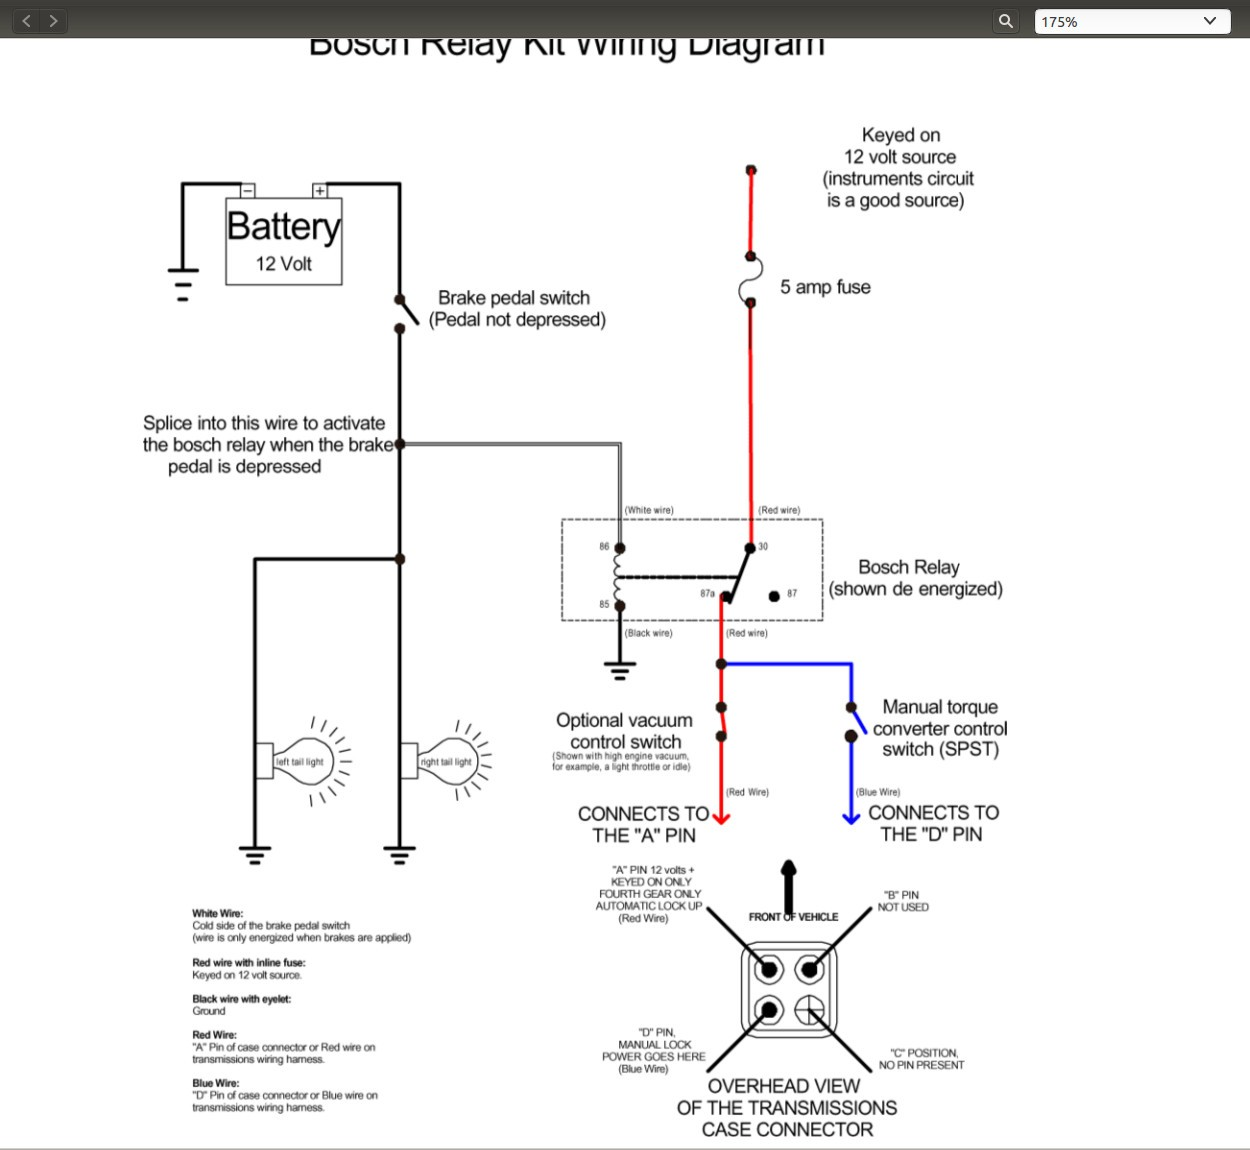 700r4 Plug Wiring Diagram List Of Schematic Circuit Diagram \u2022 Painless Wiring  700R4 Lockup Kit 700r4 Plug Wiring Diagram